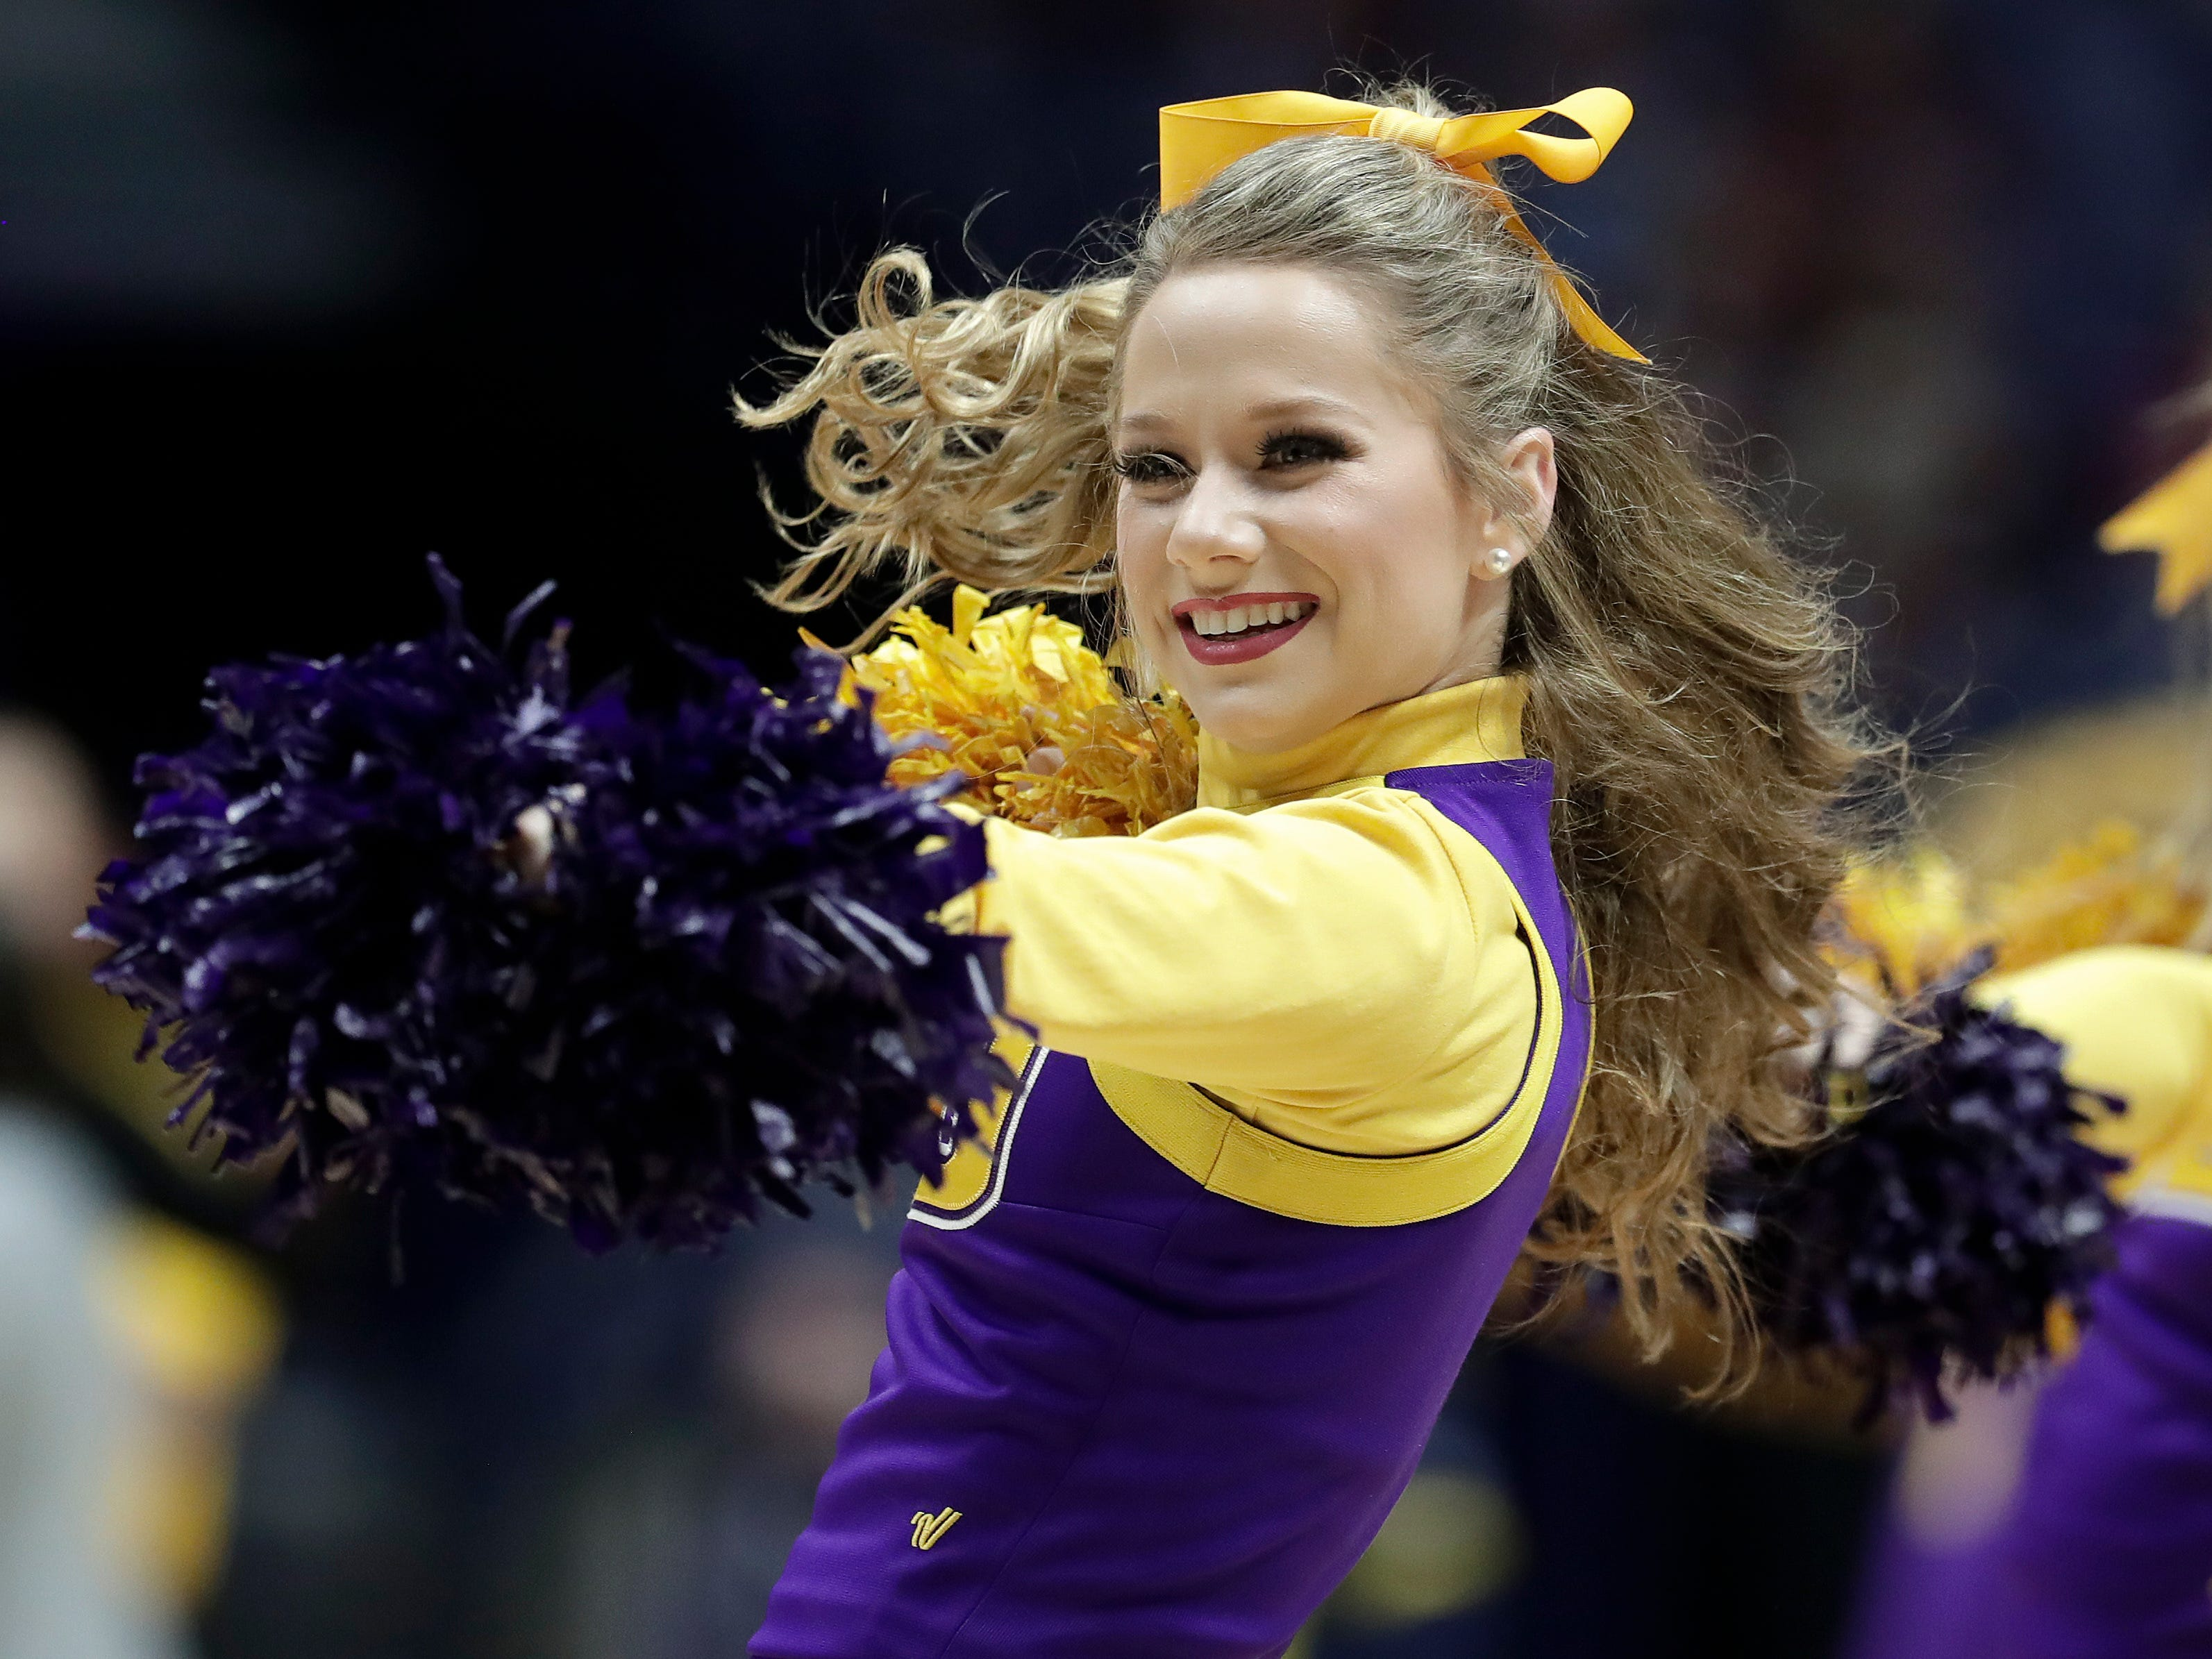 An LSU cheerleader performs during an NCAA college basketball game against Texas A&M at the women's Southeastern Conference tournament Friday, March 2, 2018, in Nashville, Tenn. Texas A&M won 75-69. (AP Photo/Mark Humphrey)